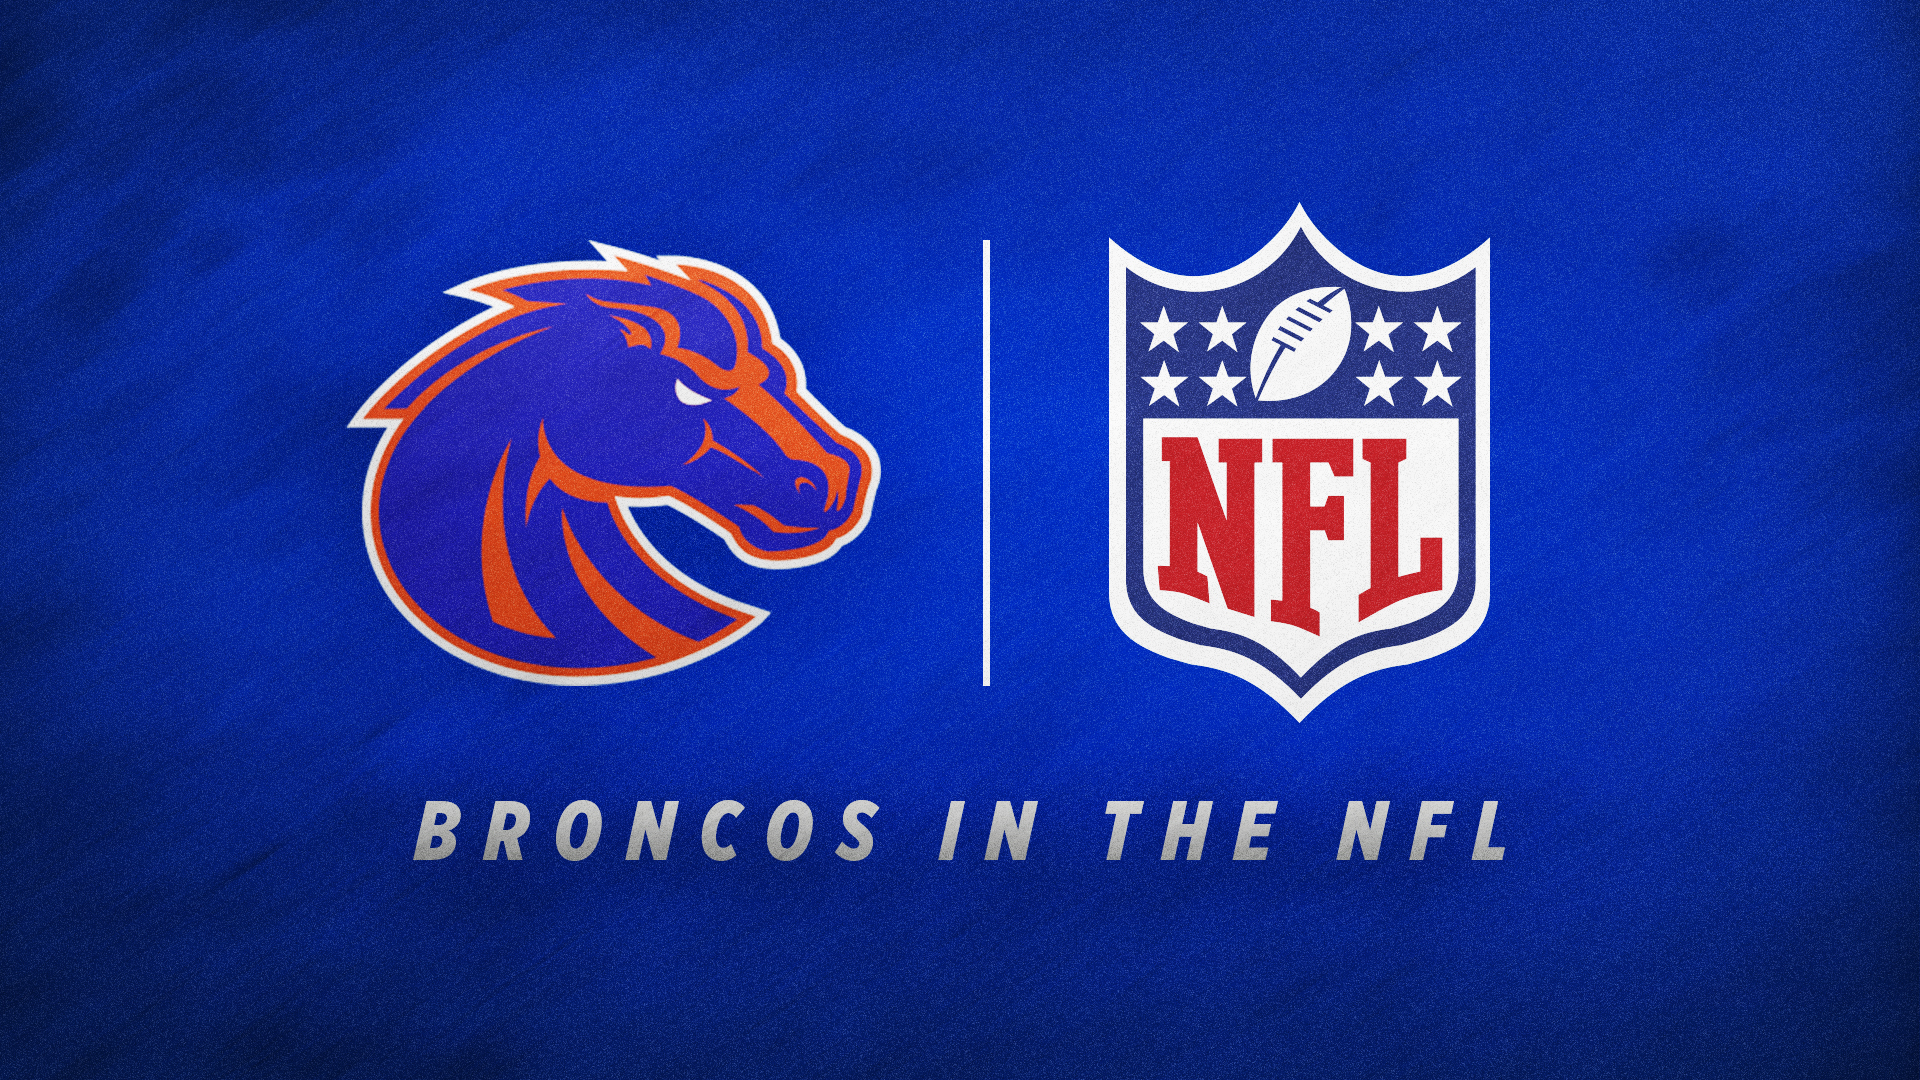 Broncos in the NFL